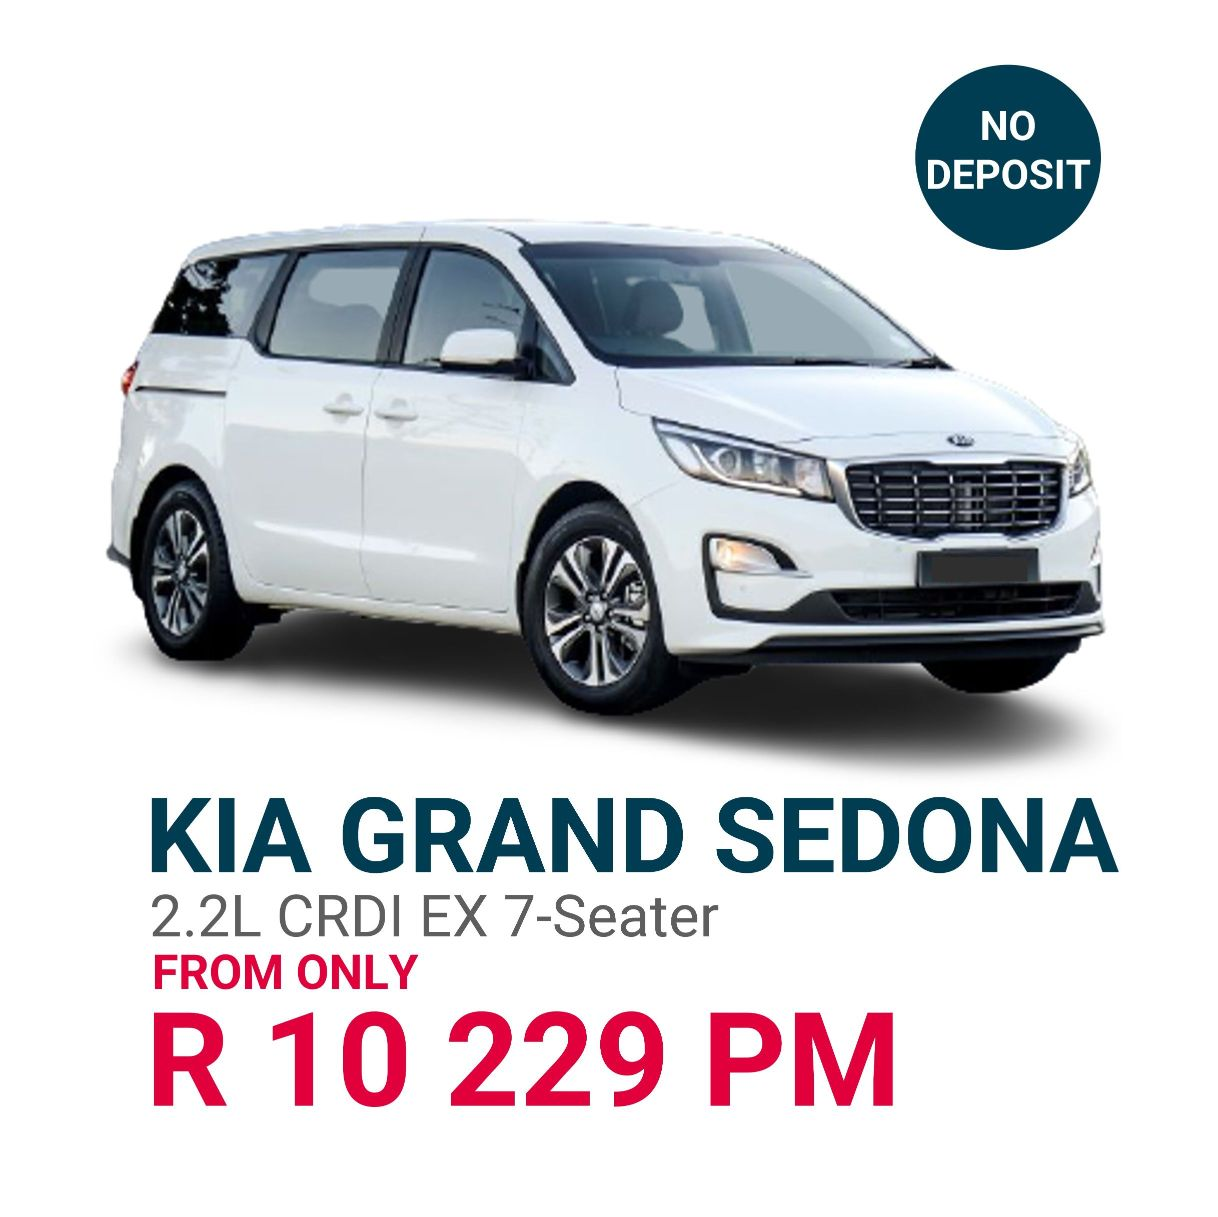 kia-grand-sedona-2-2-from-only-r10-229pm